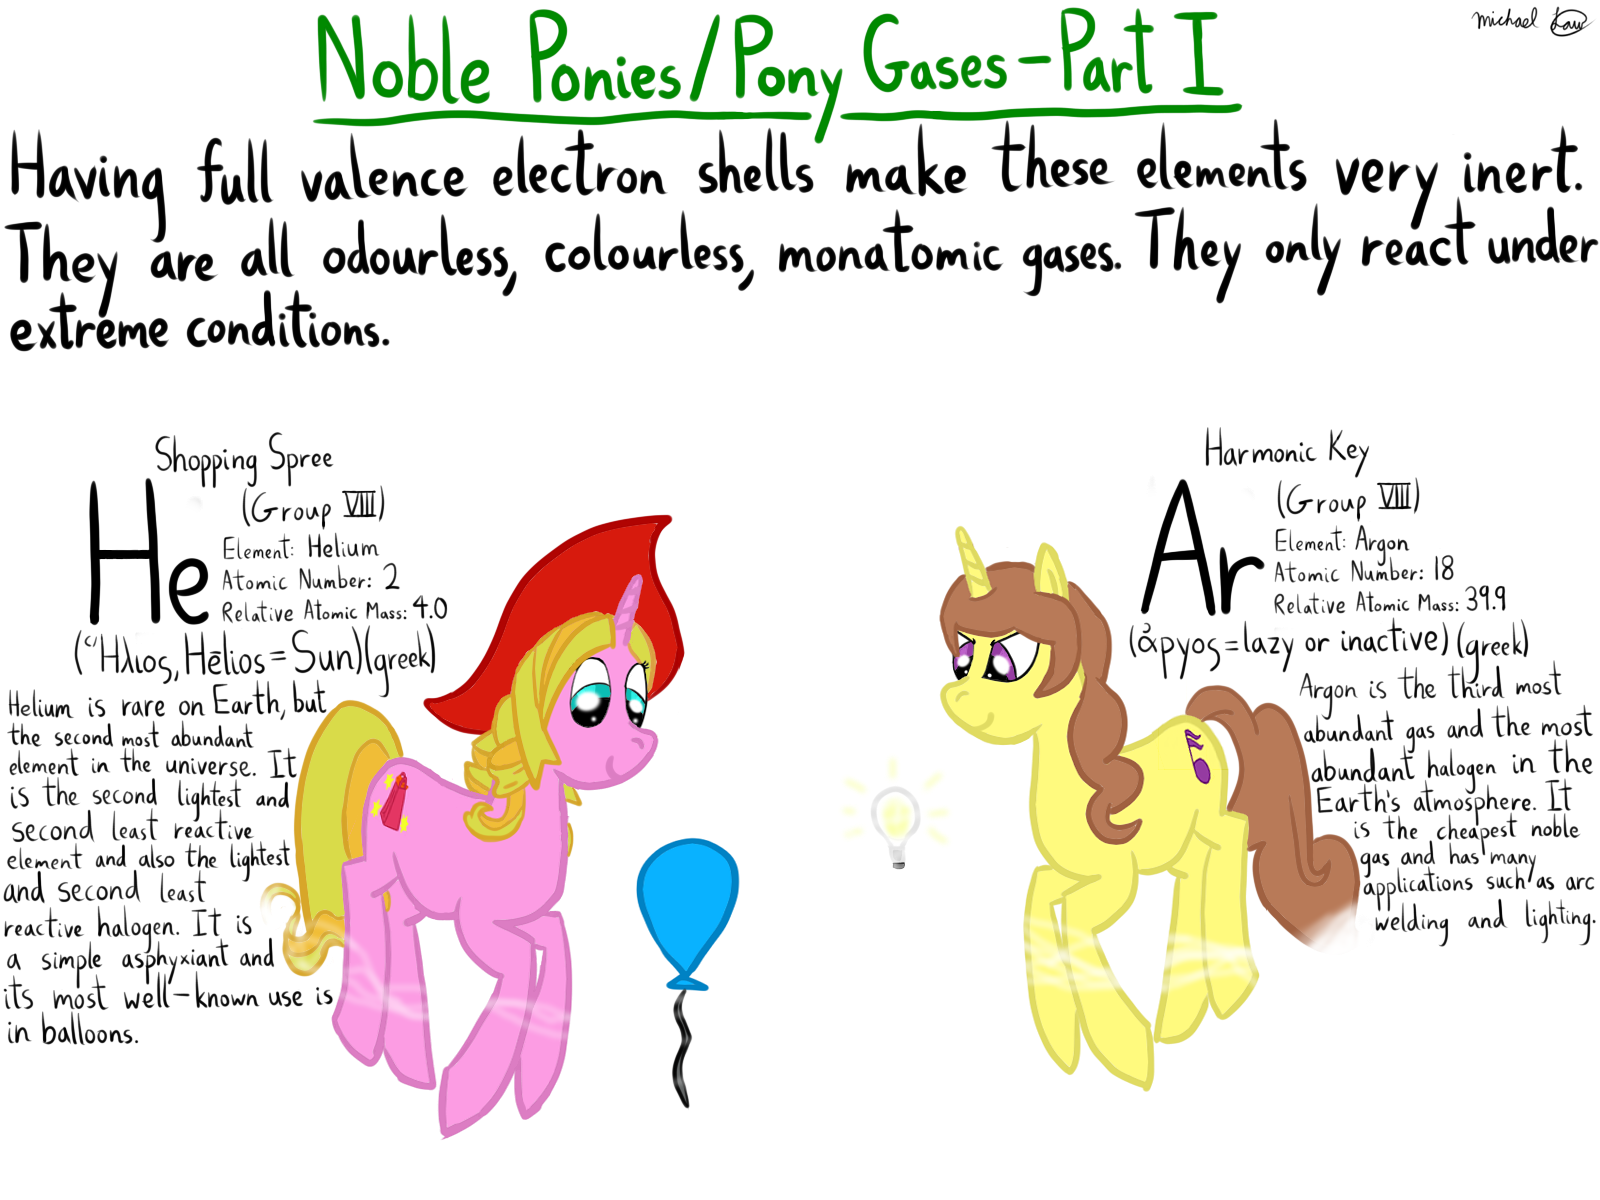 The periodic table of original characters by michylawhty on deviantart michylawhty 3 0 periodic table of ocs noble poniespony gases 1 by michylawhty urtaz Gallery